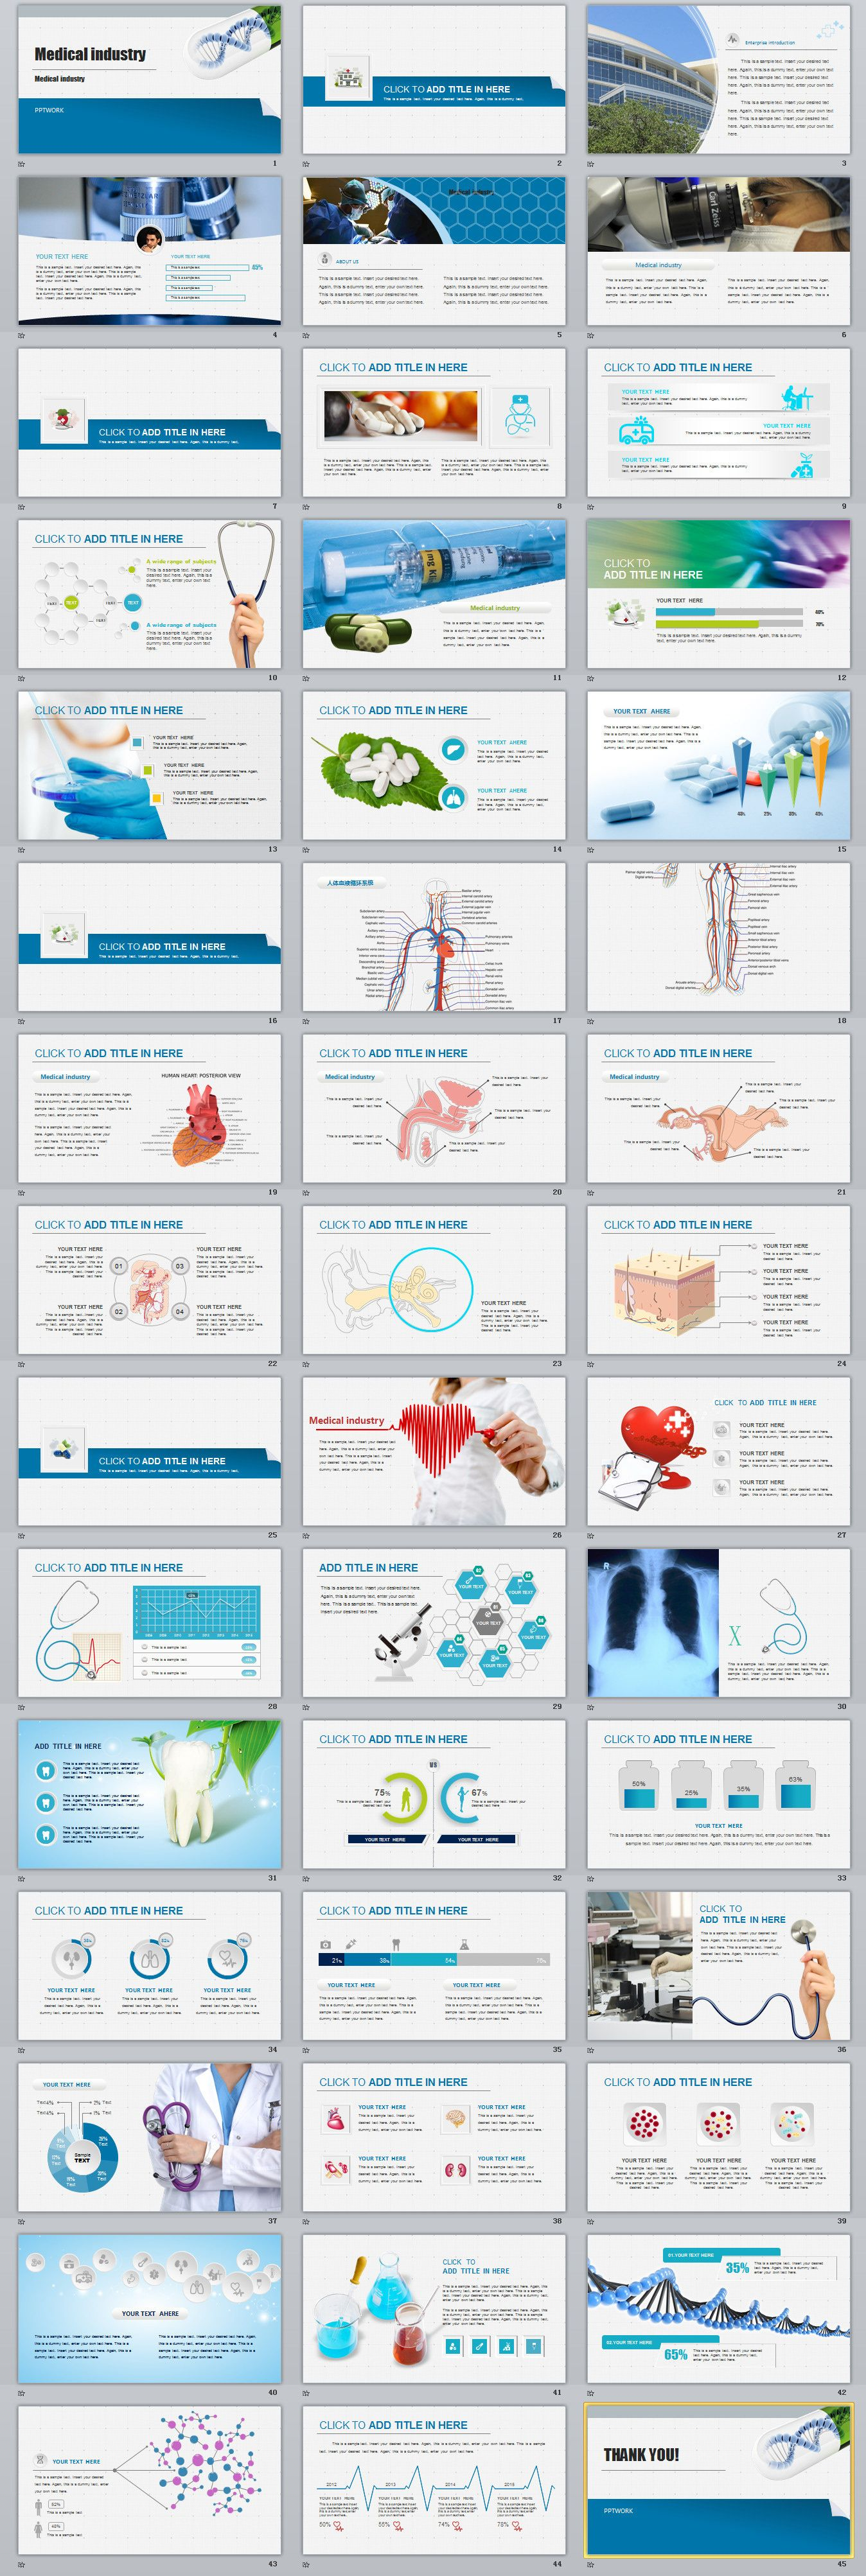 45 best medical industry powerpoint templates on behance 45 best medical industry powerpoint templates on behance powerpoint templates presentation toneelgroepblik Image collections